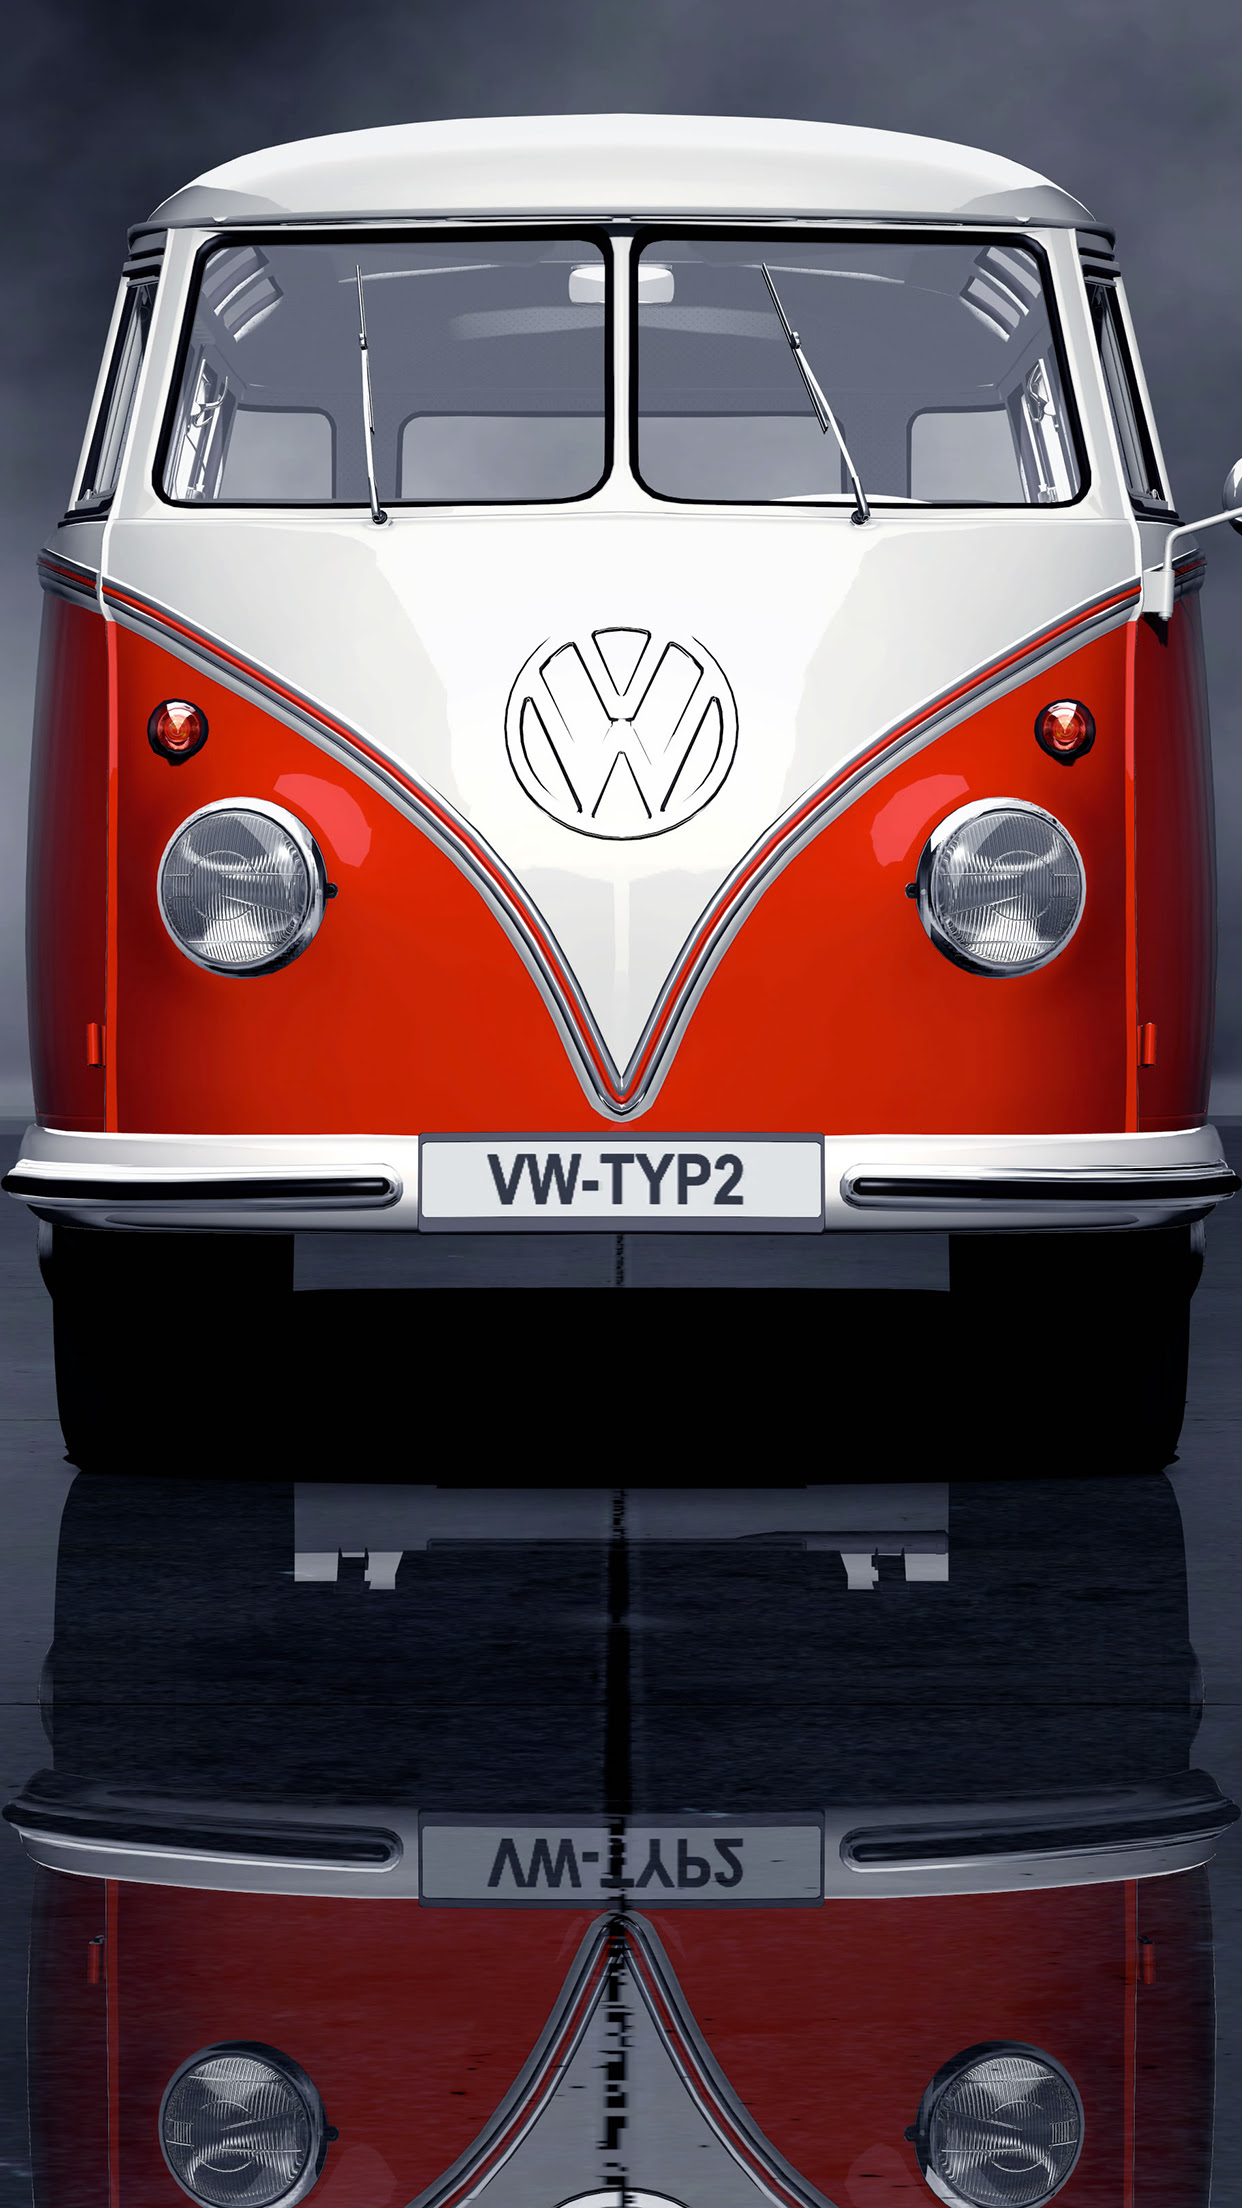 Volkswagen Combi Wallpaper for iPhone X, 8, 7, 6  Free Download on 3Wallpapers